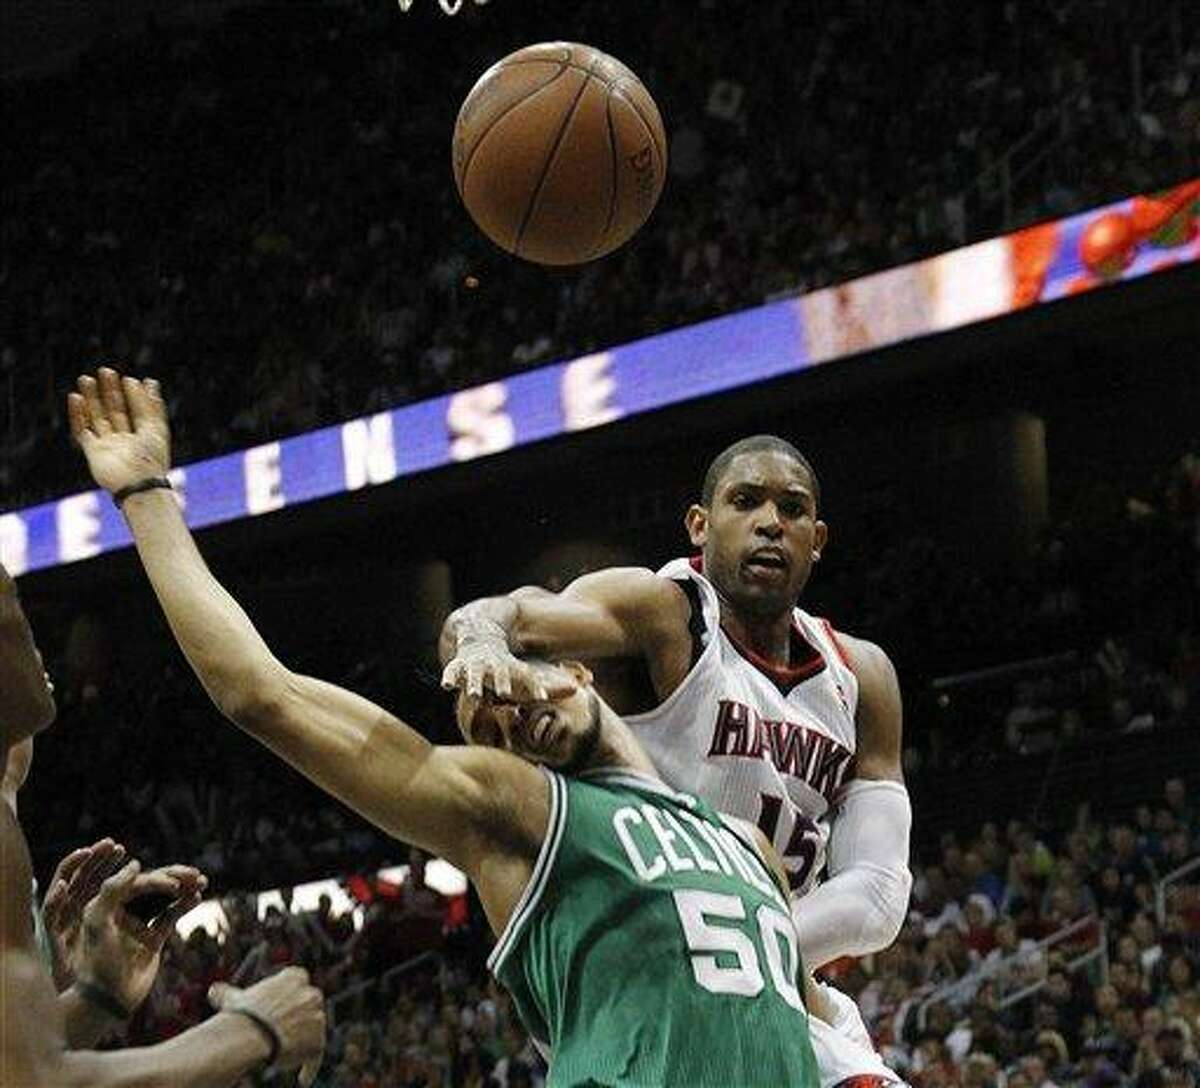 Atlanta Hawks center Al Horford (15) and Boston Celtics center Ryan Hollins (50) battle for a loose ball during the second half of Game 5 of an NBA first-round playoff series basketball game Tuesday, May 8, 2012, in Atlanta. Atlanta won 87-86. (AP Photo/John Bazemore)